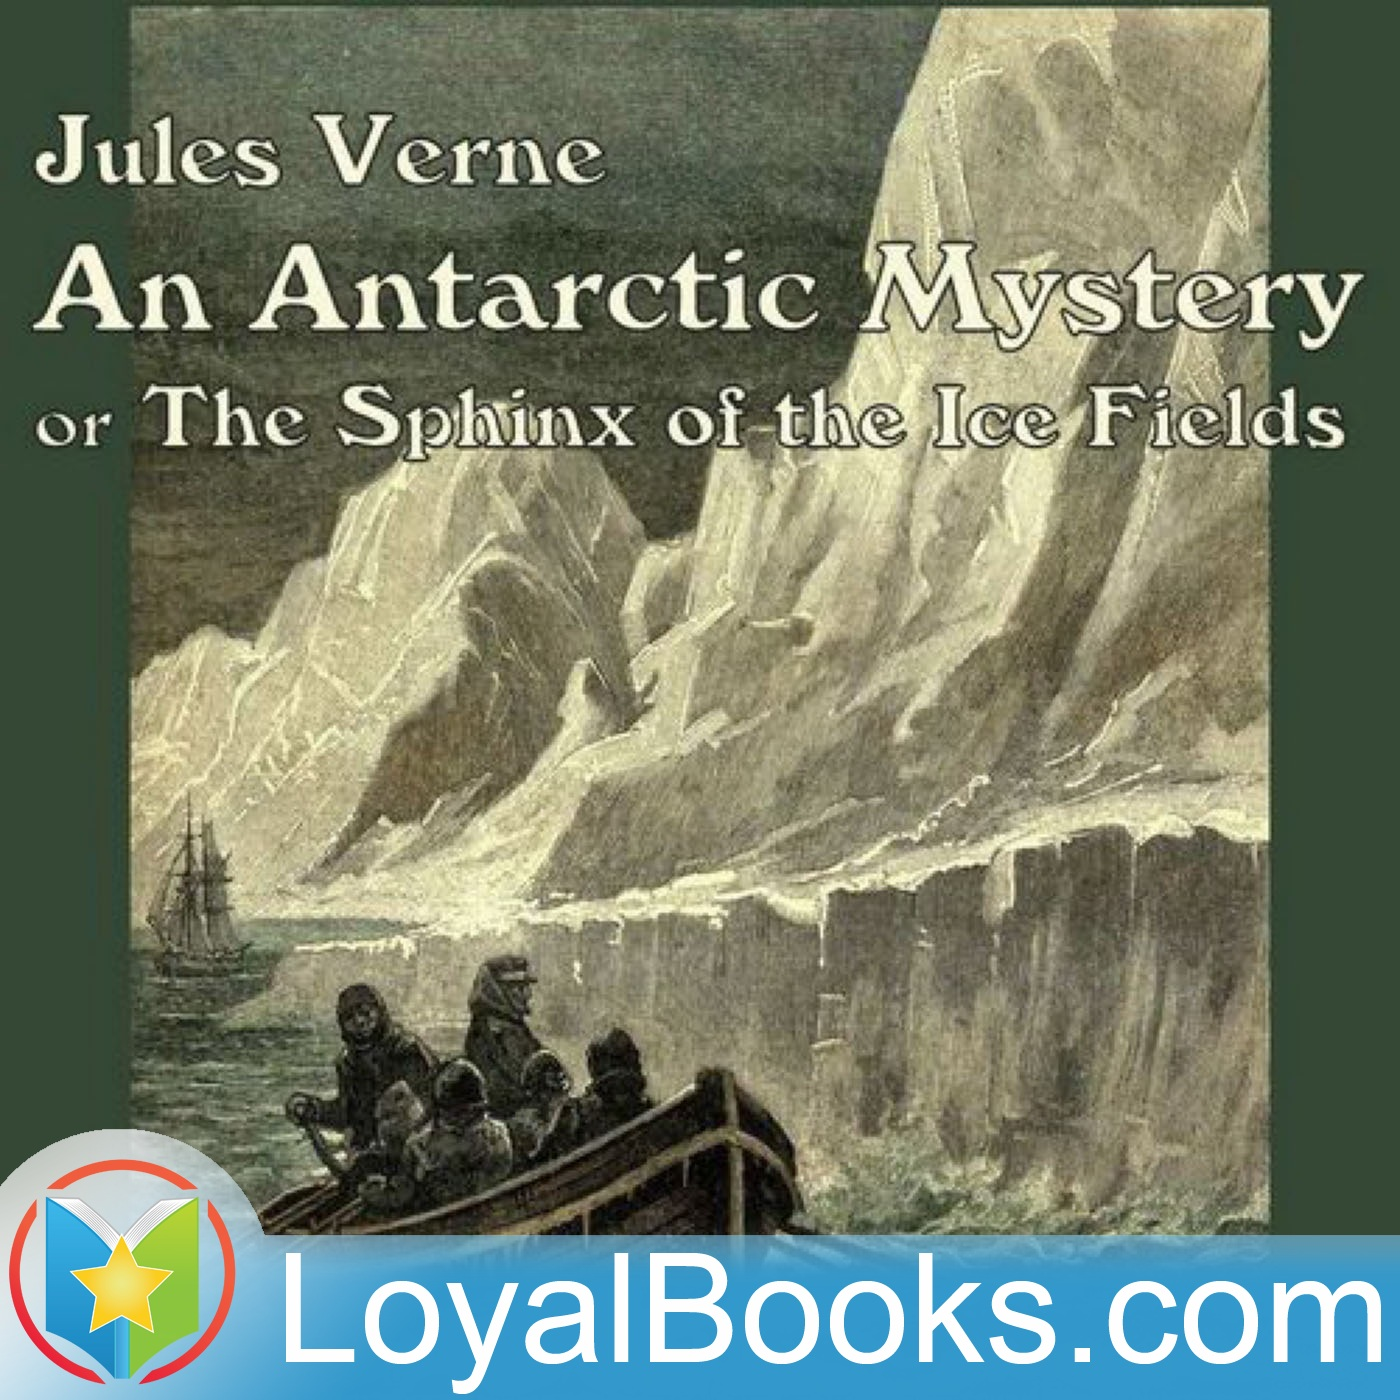 <![CDATA[An Antarctic Mystery or The Sphinx of the Ice Fields by Jules Verne]]>